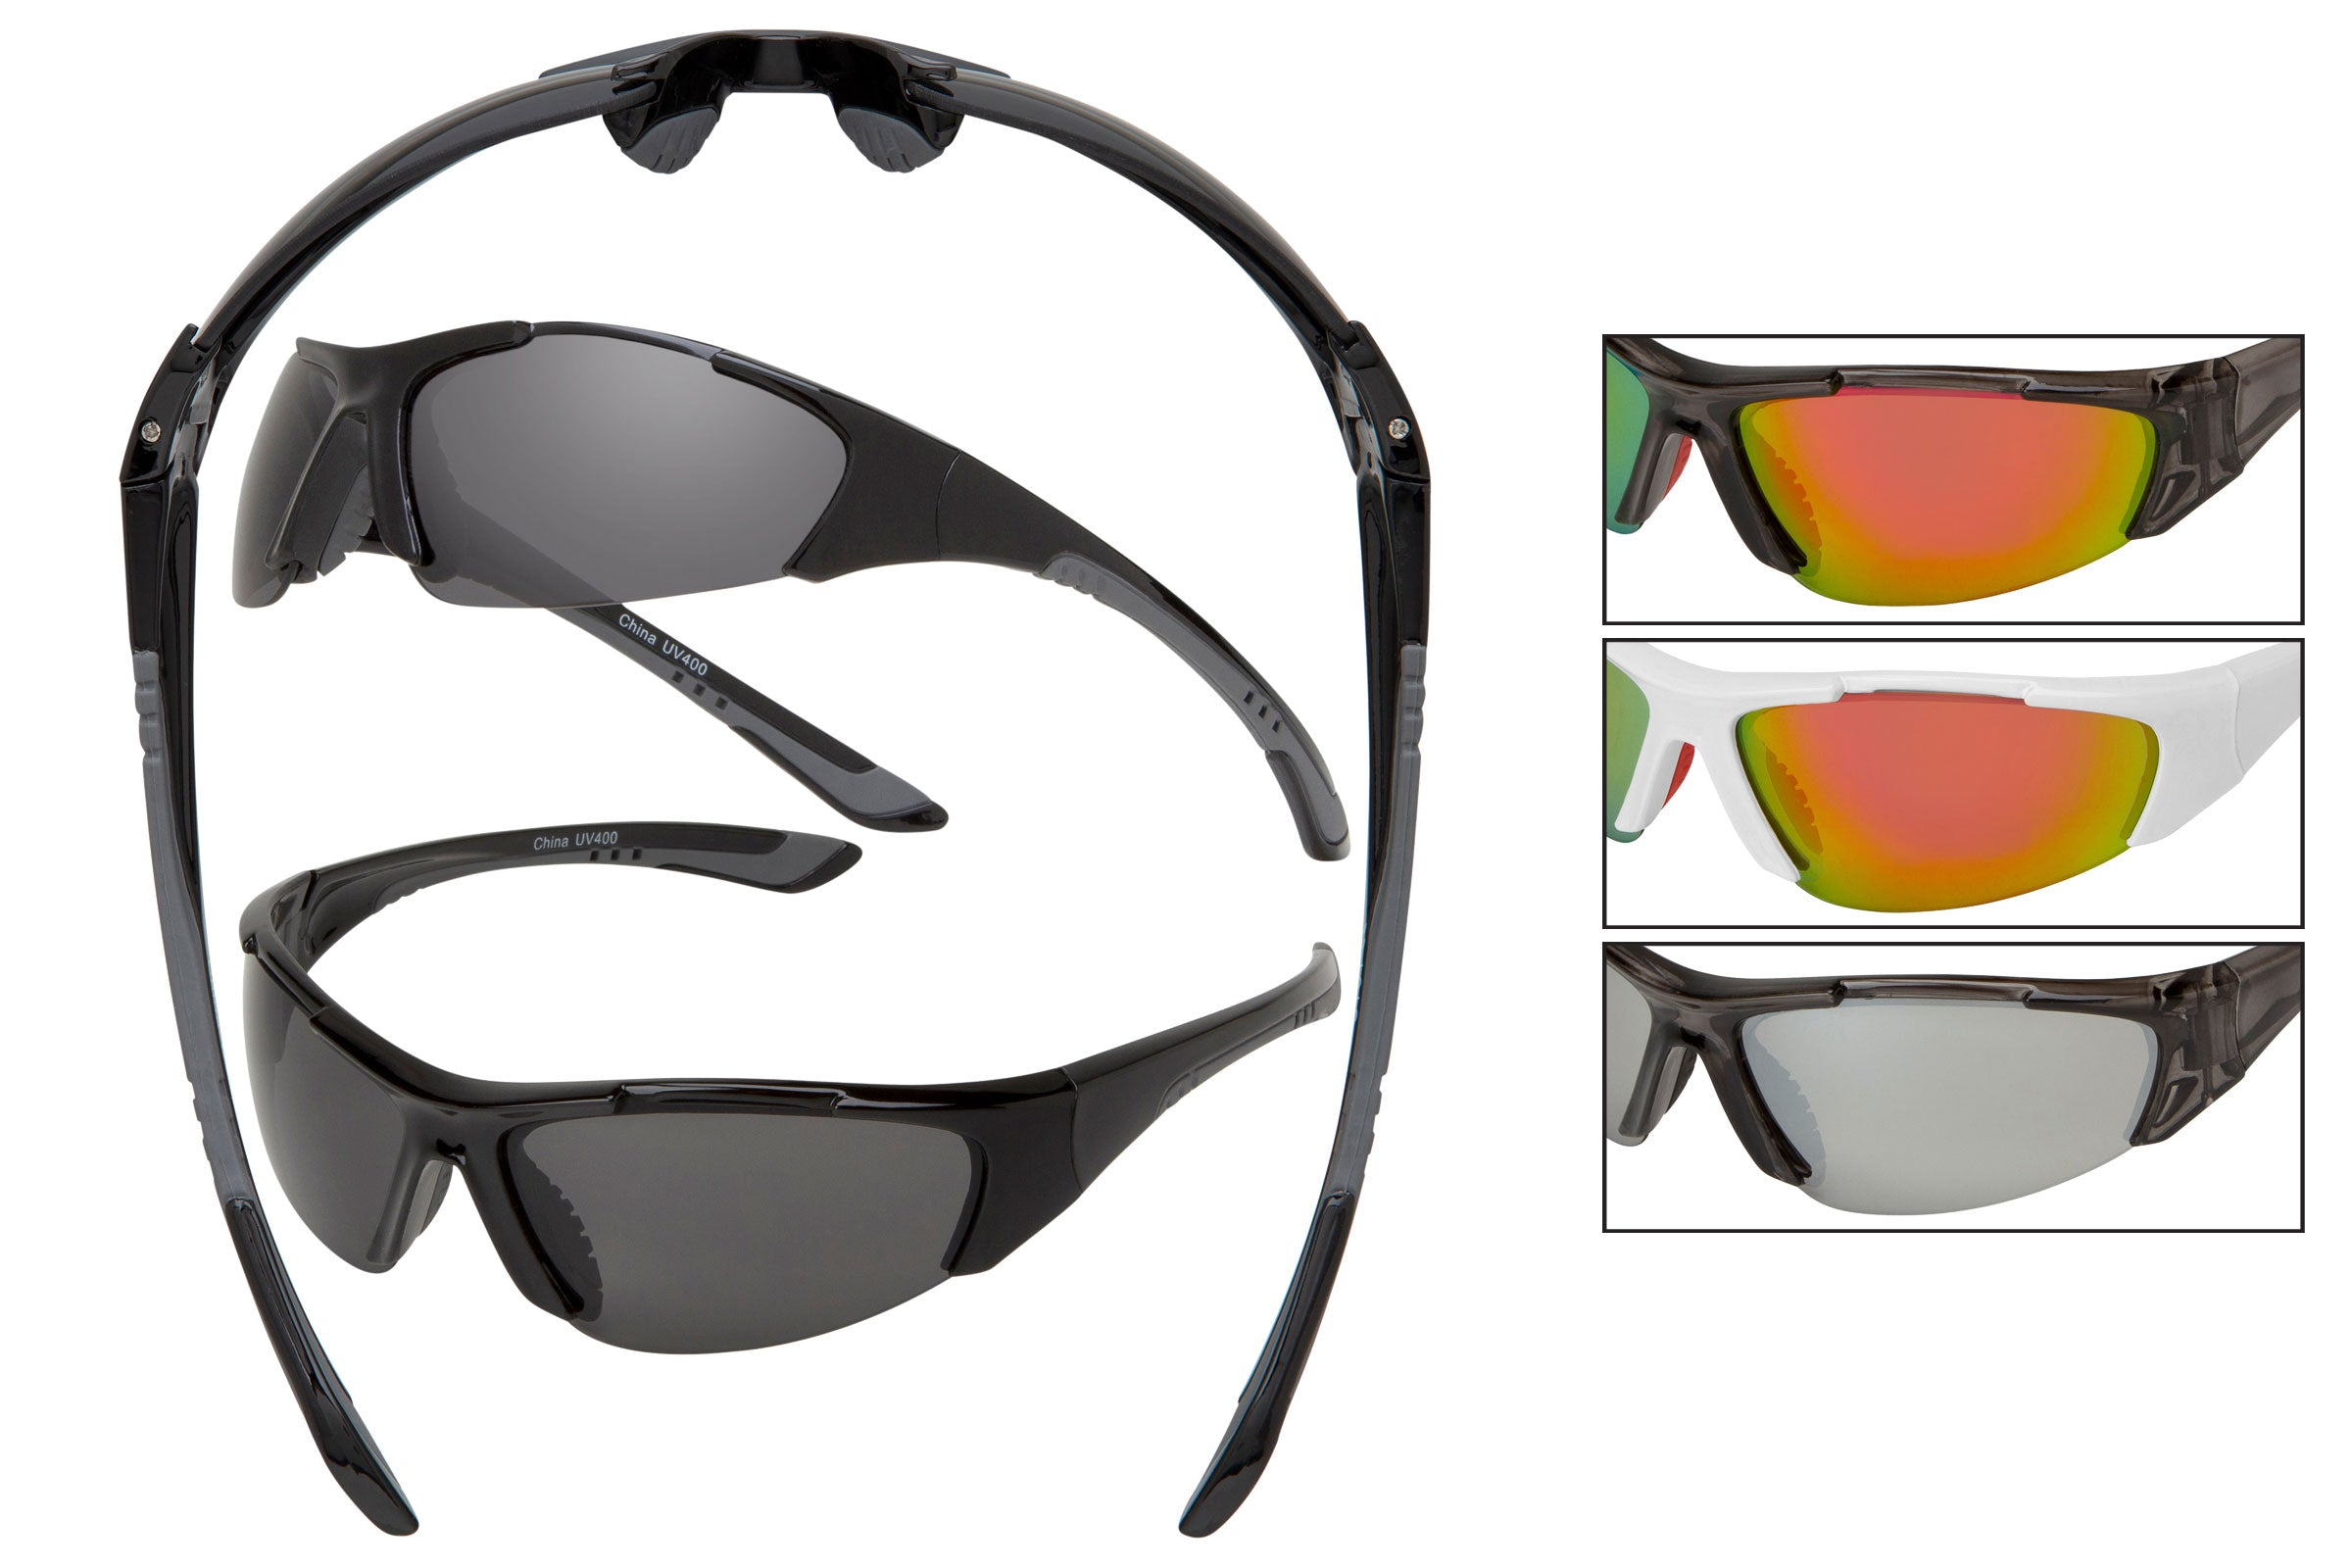 ST01 - Sport Wrap Sunglasses